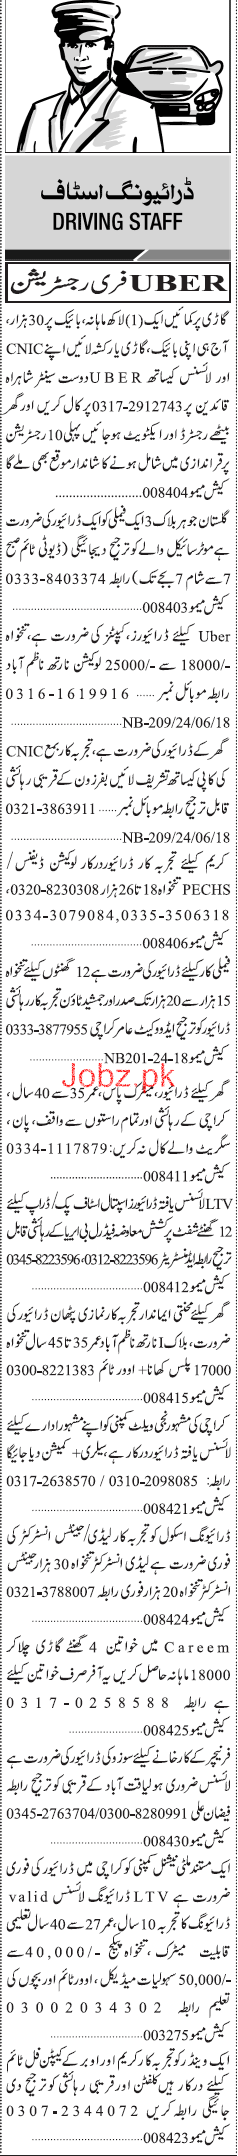 LTV Drivers, HTV Drivers, Tralla Drivers Job Opportunity